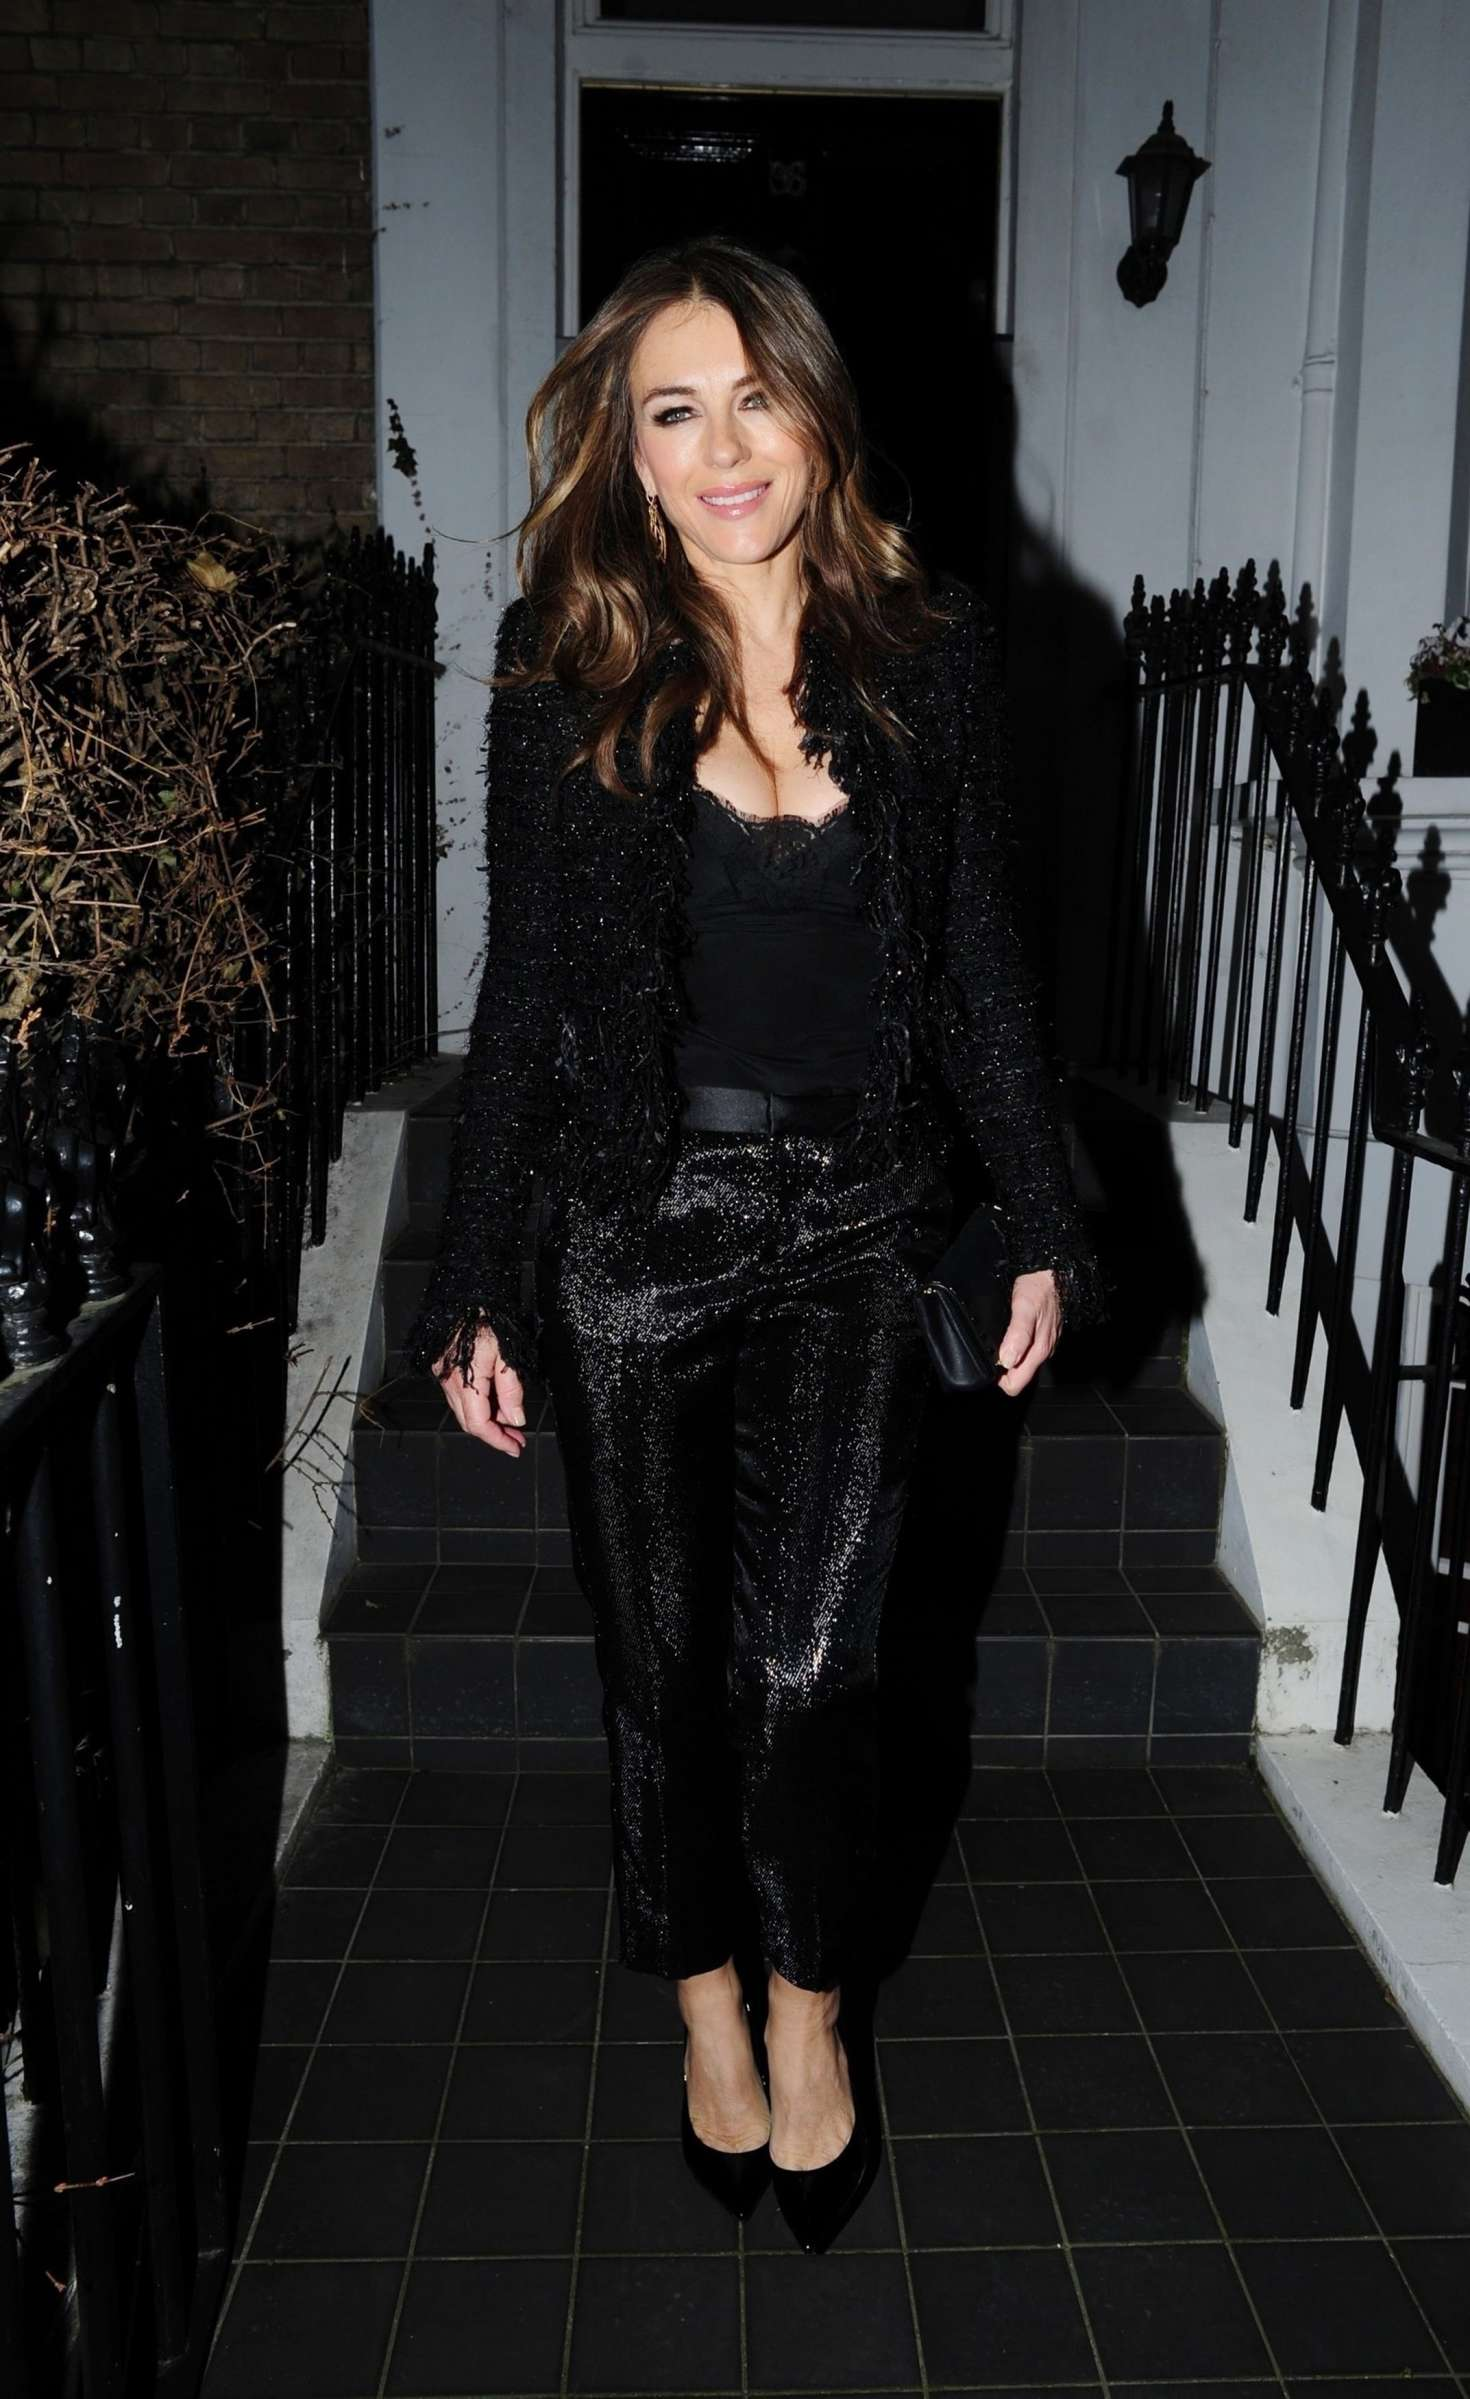 Elizabeth Hurley - Outside her home in London